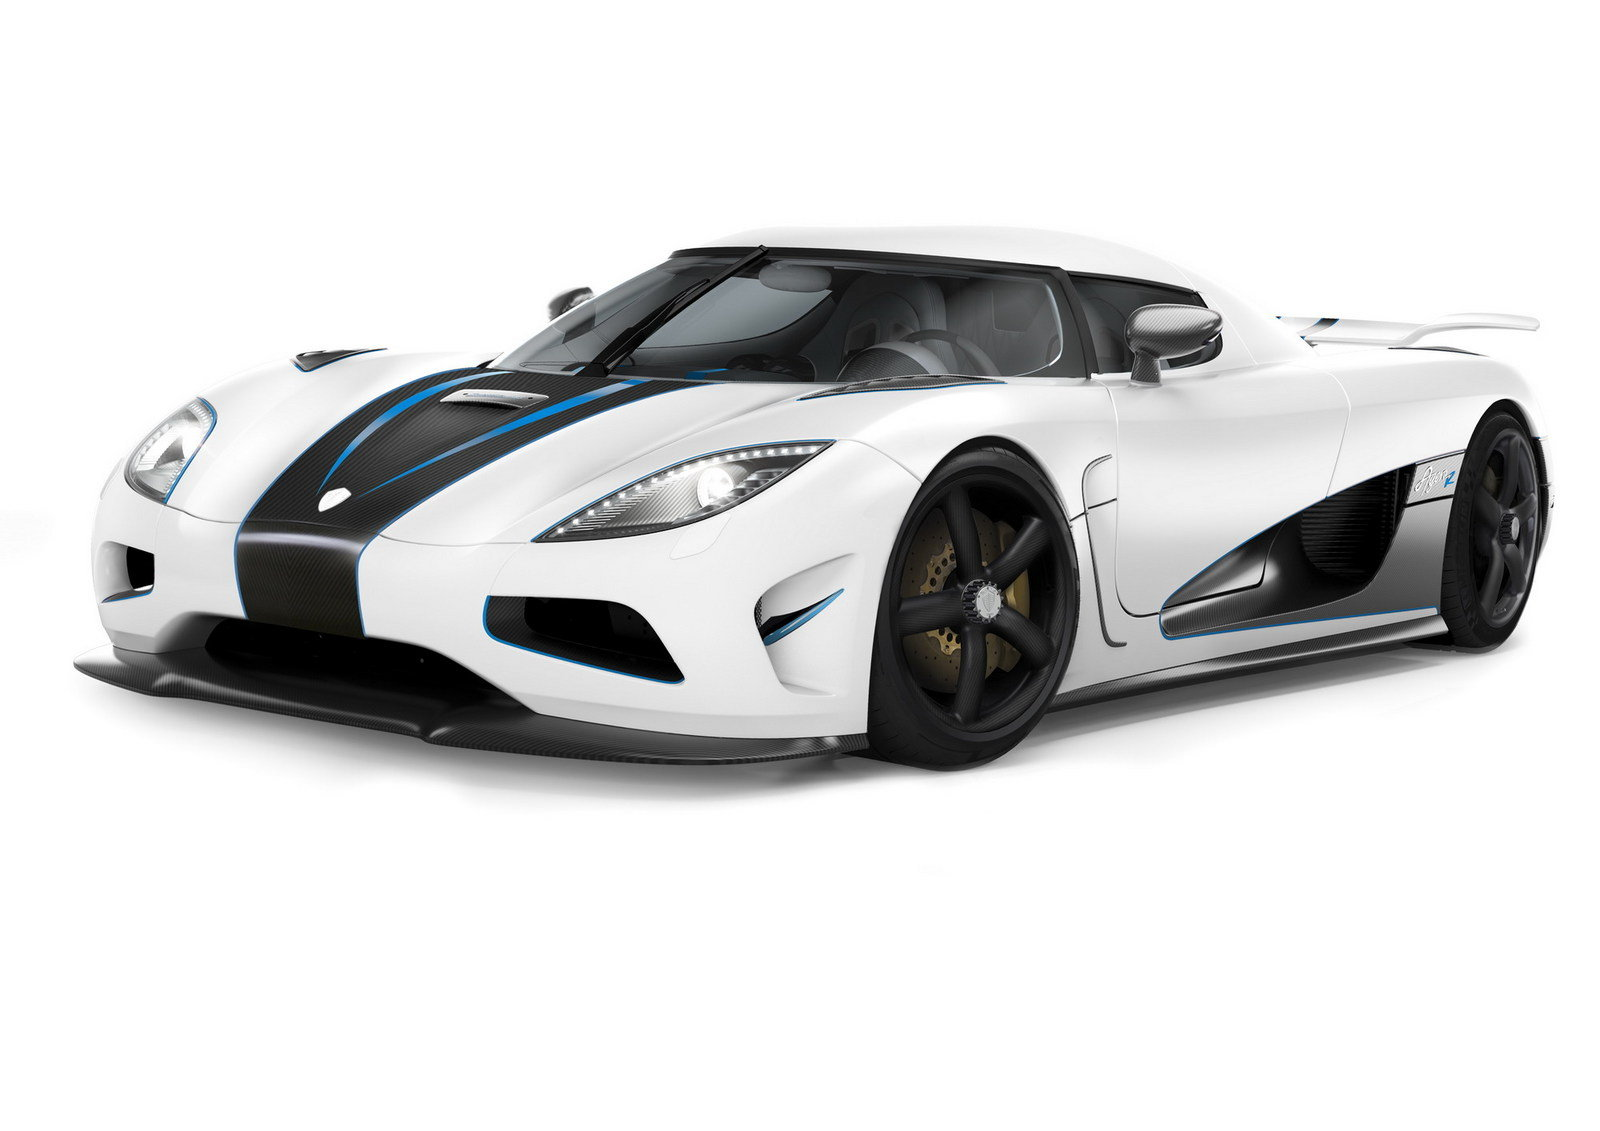 2013 Koenigsegg Agera R Review   Gallery   Top Speed. »